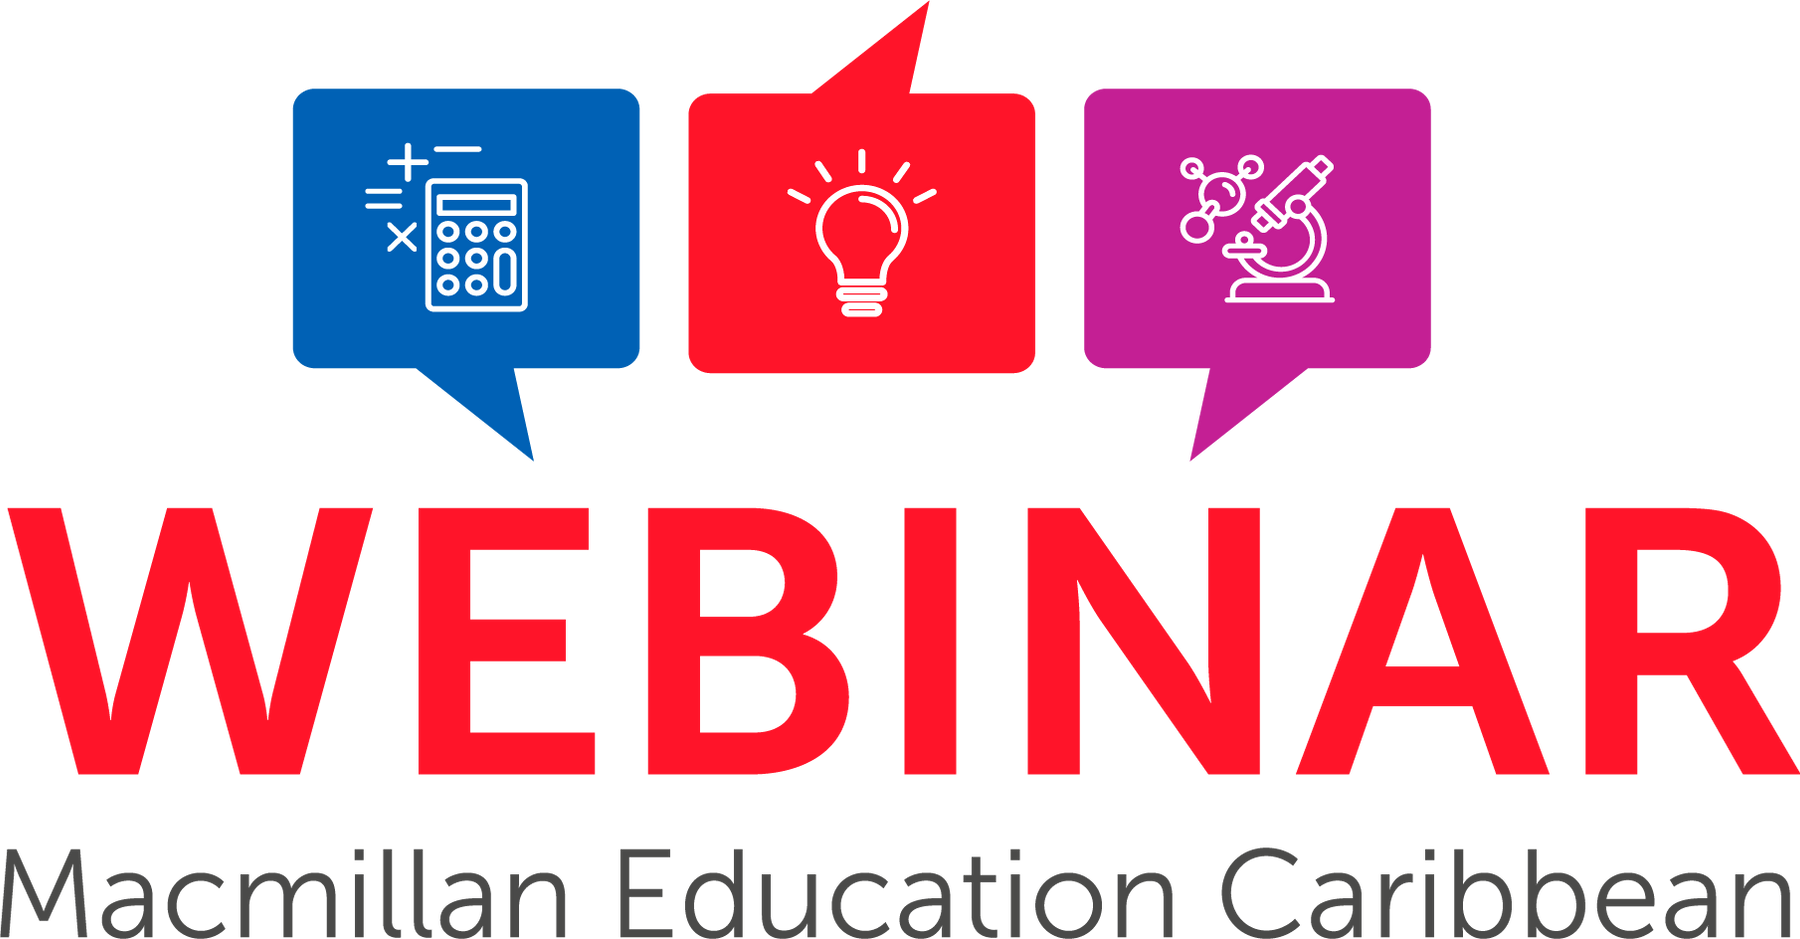 Introducing our webinars for Spring 2021